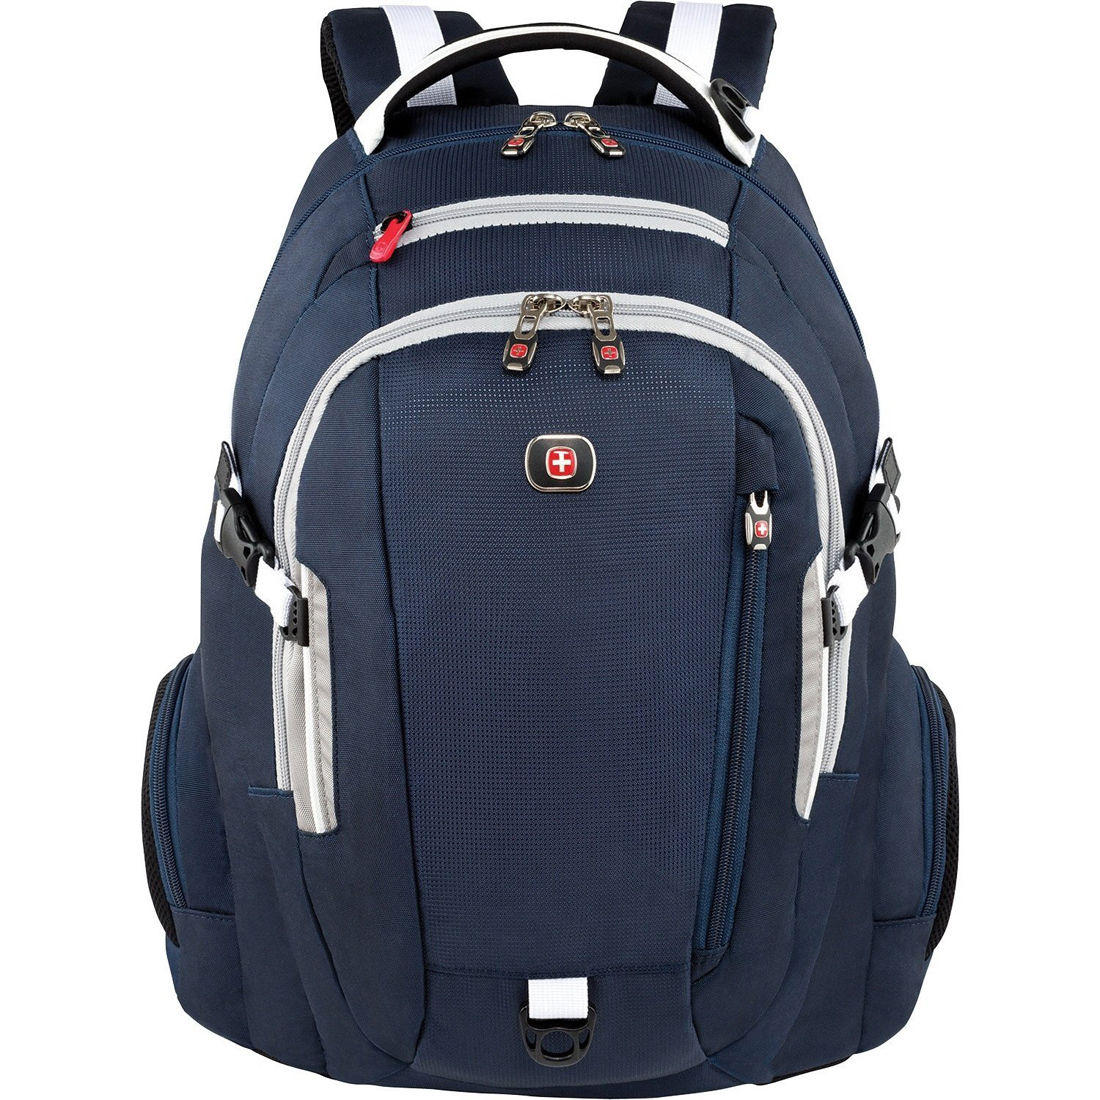 $29.99 Wenger Swiss Army Commute Backpack